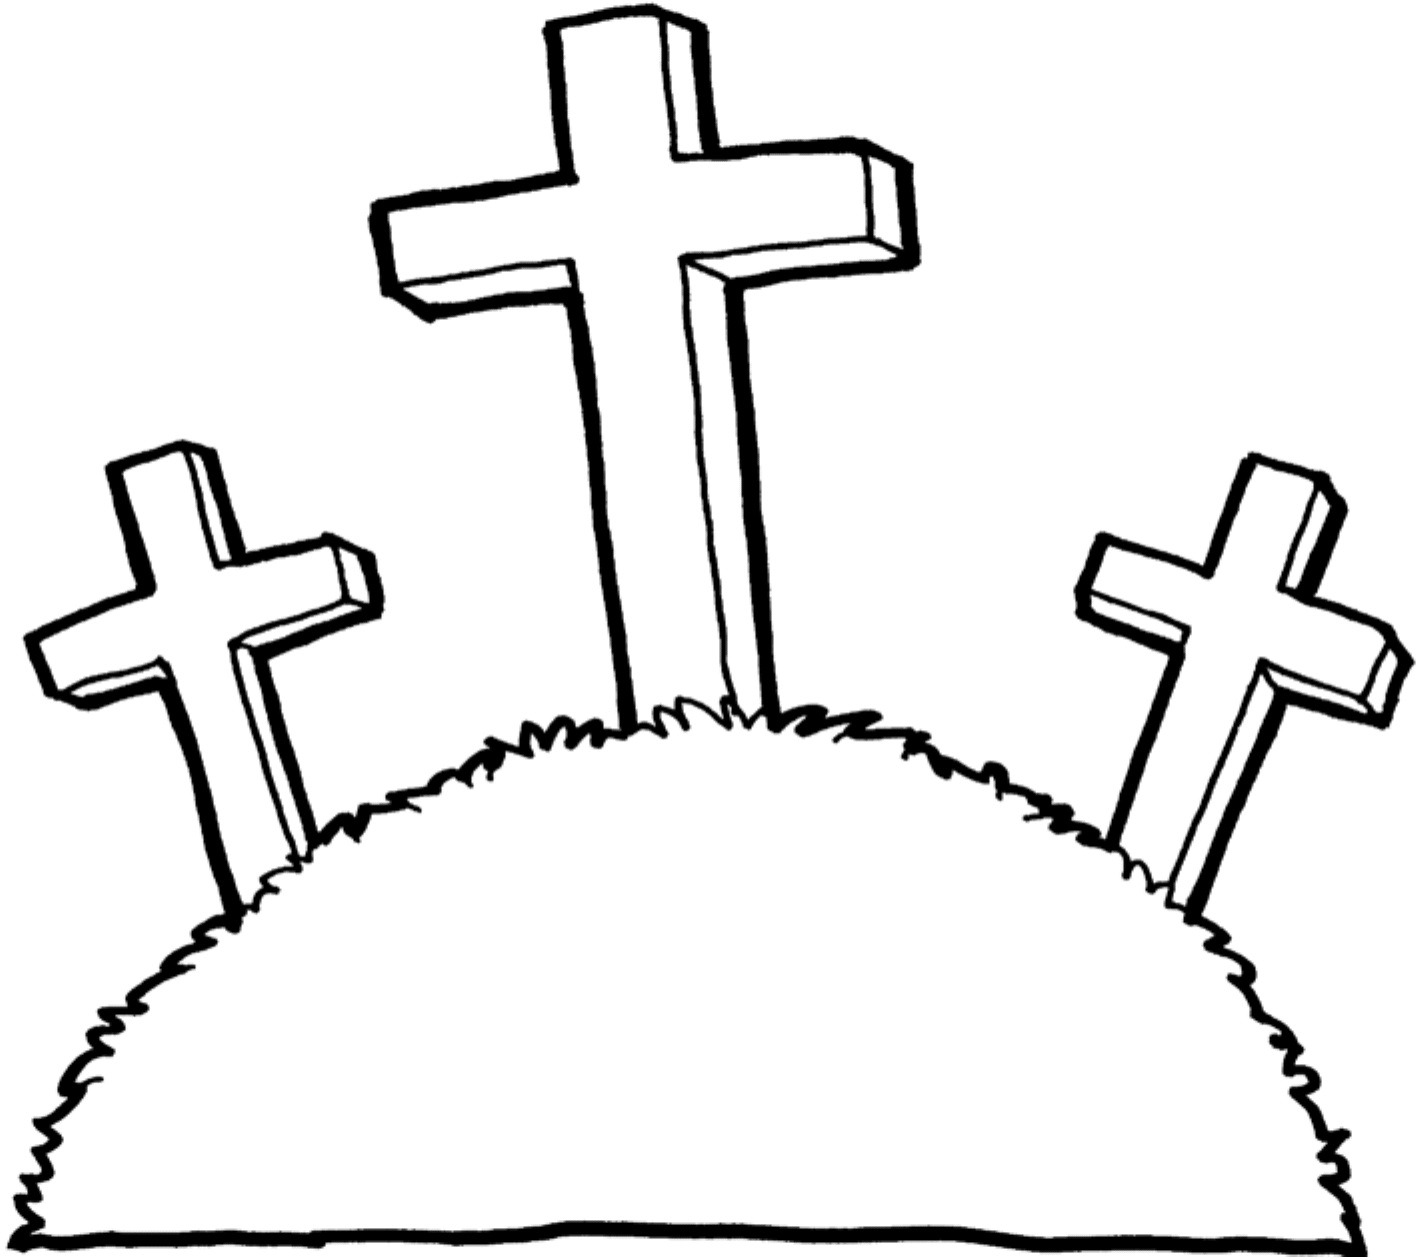 Clipart Crosses BW-1